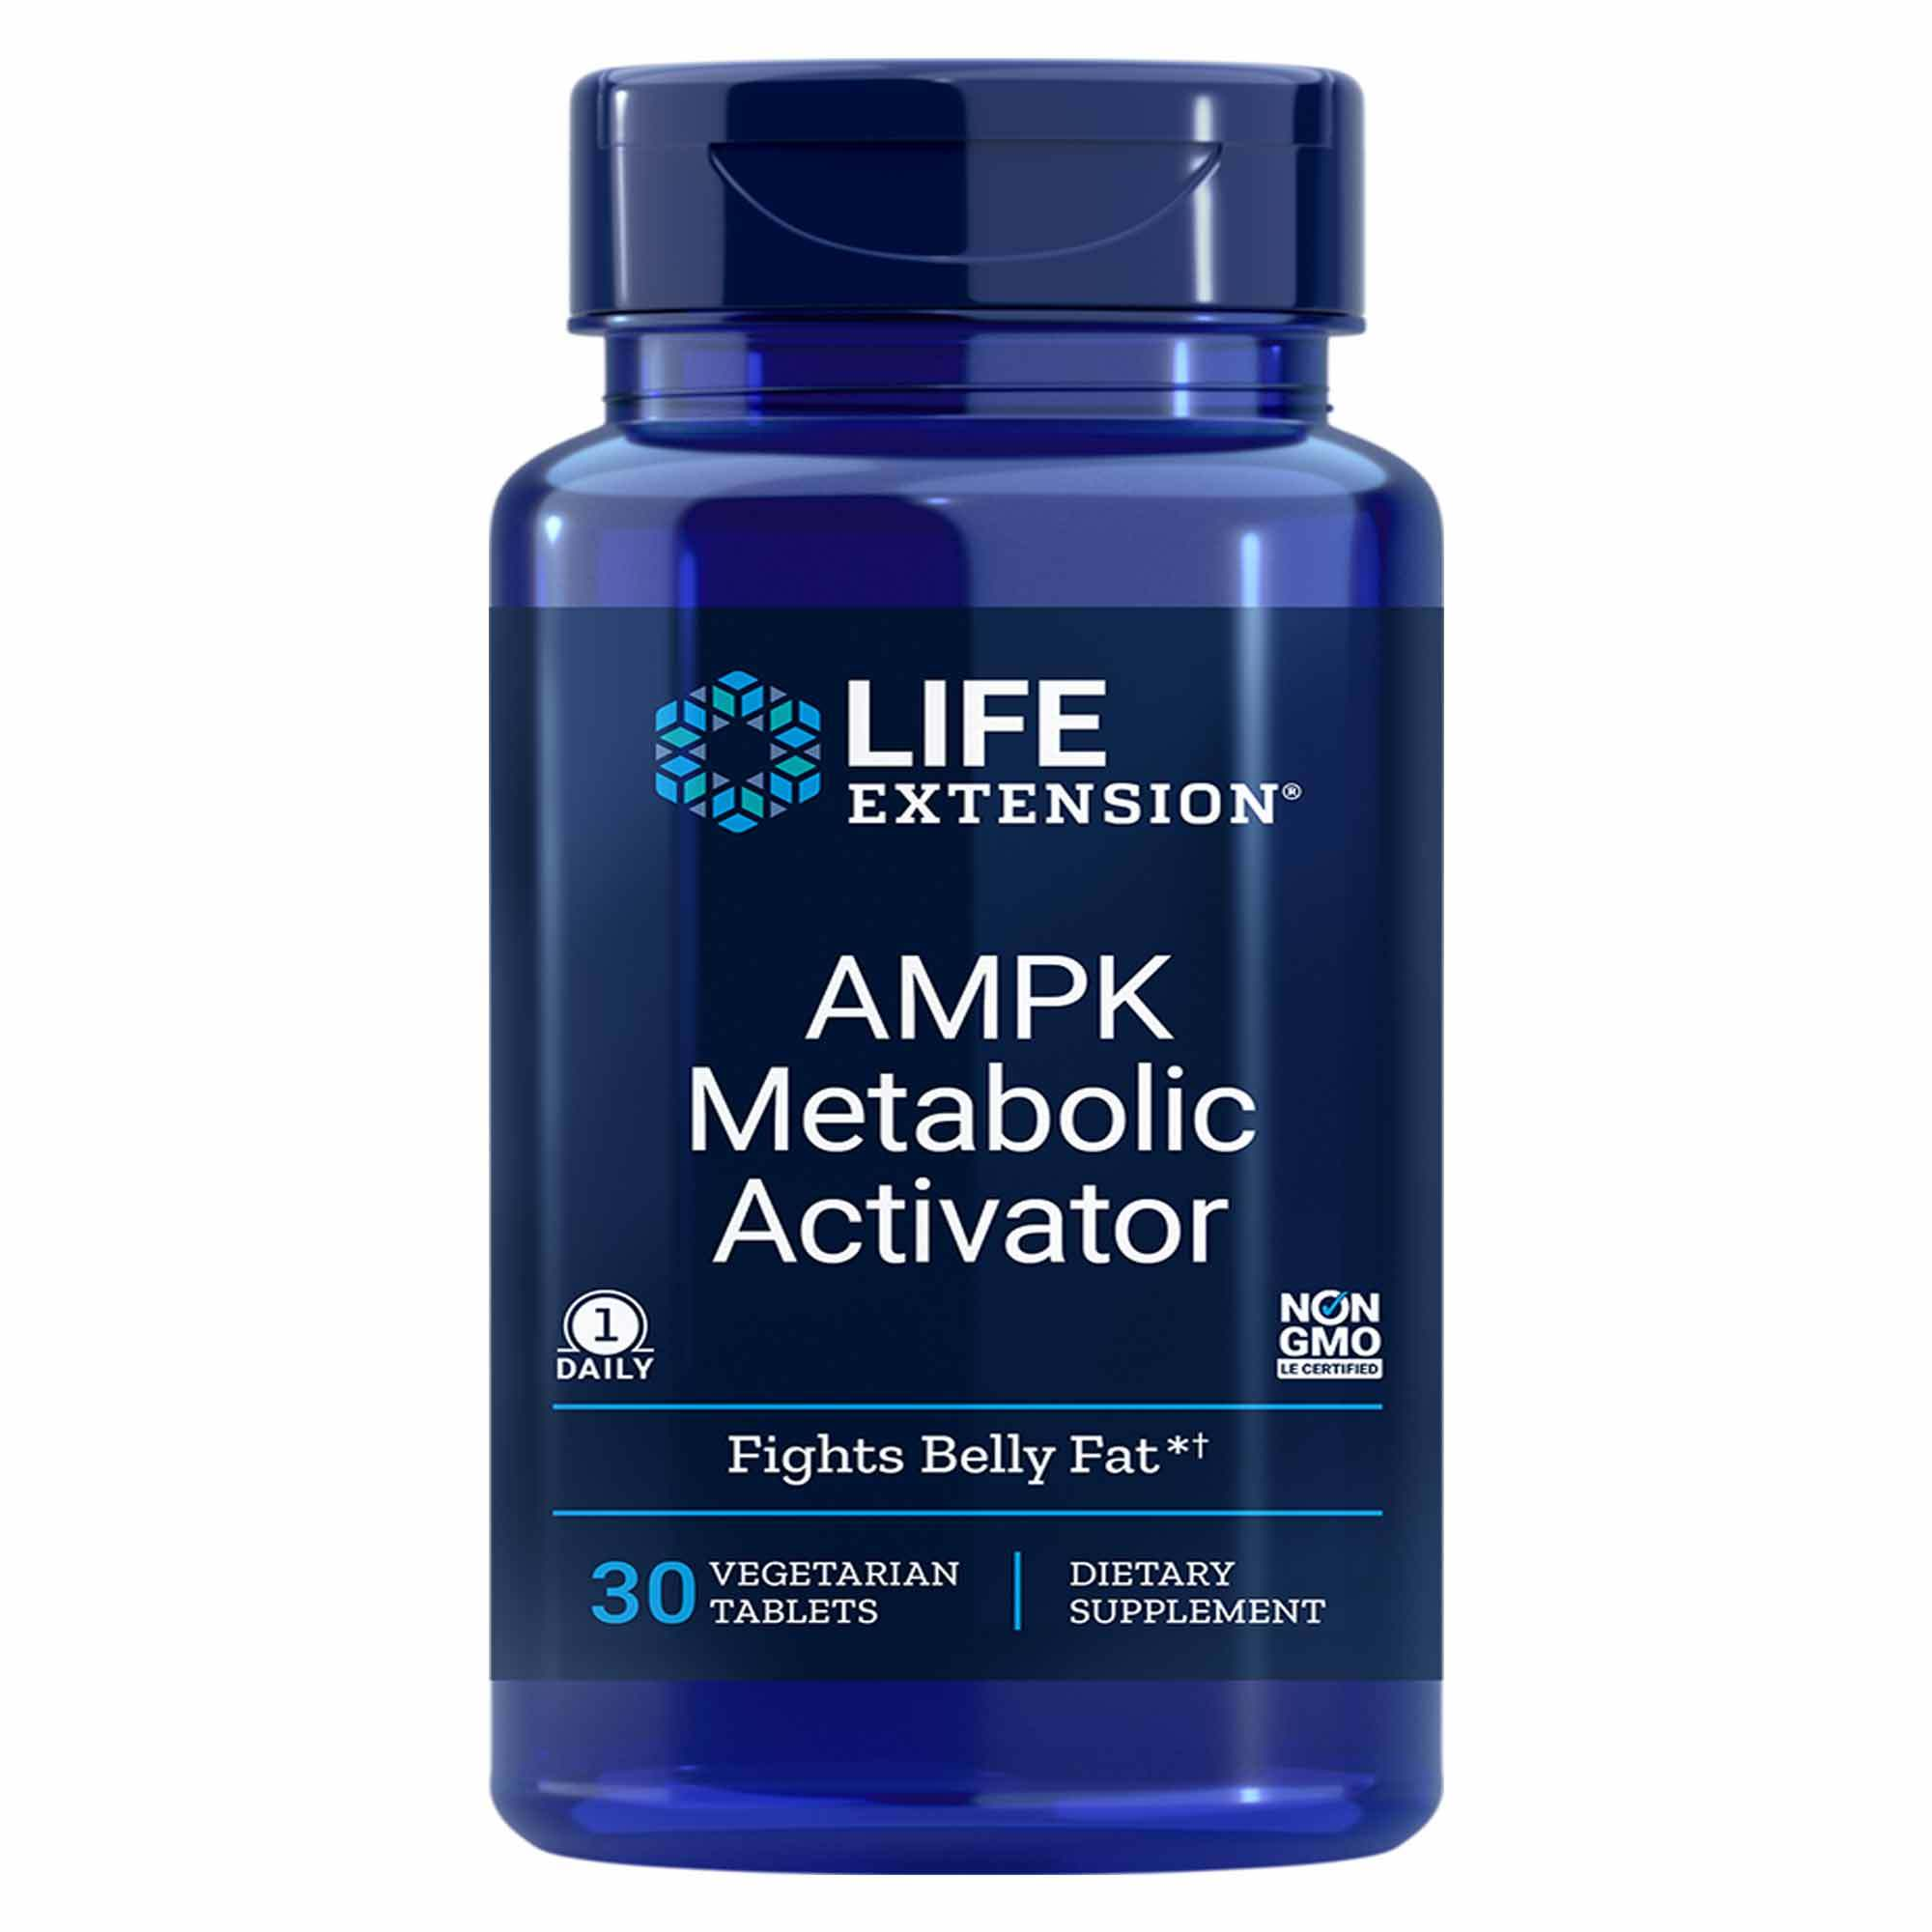 AMPK Metabolic Activator - Life Extension